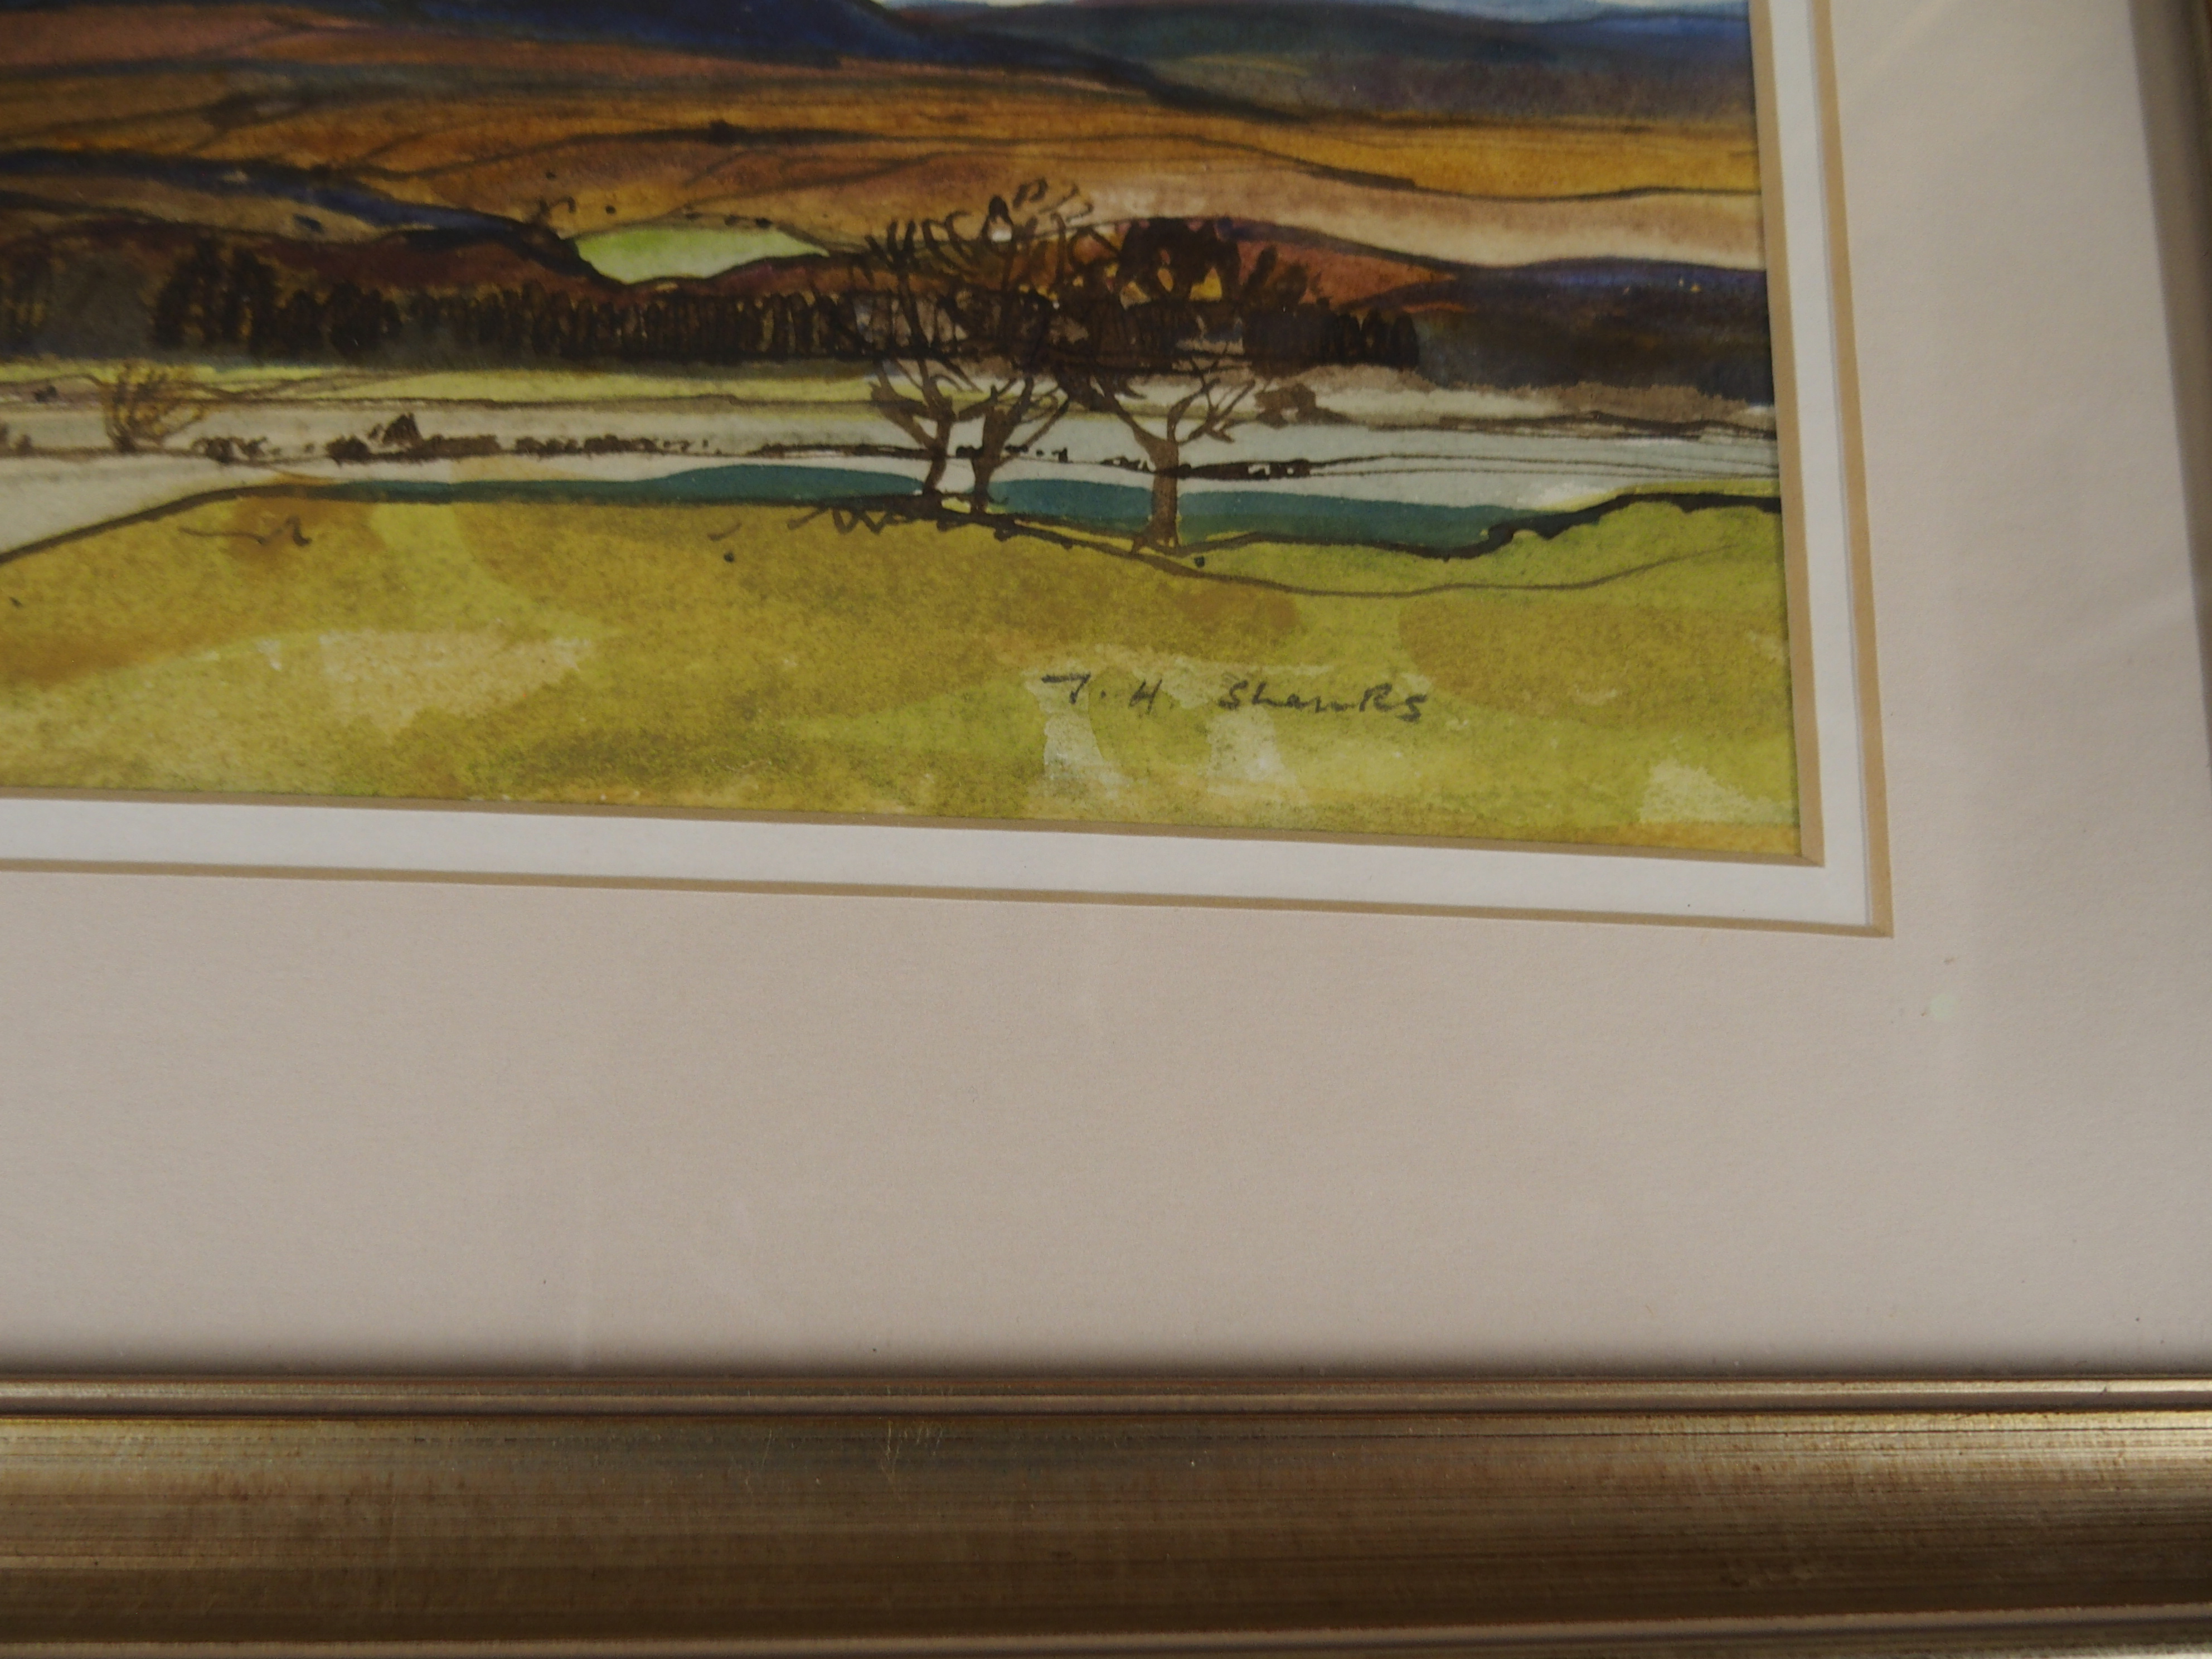 •TOM H SHANKS RSW, RGI (1921-1920) NEAR BALFRON Watercolour on paper, signed, 20 x 35cm (8 x 13 3/ - Image 3 of 4